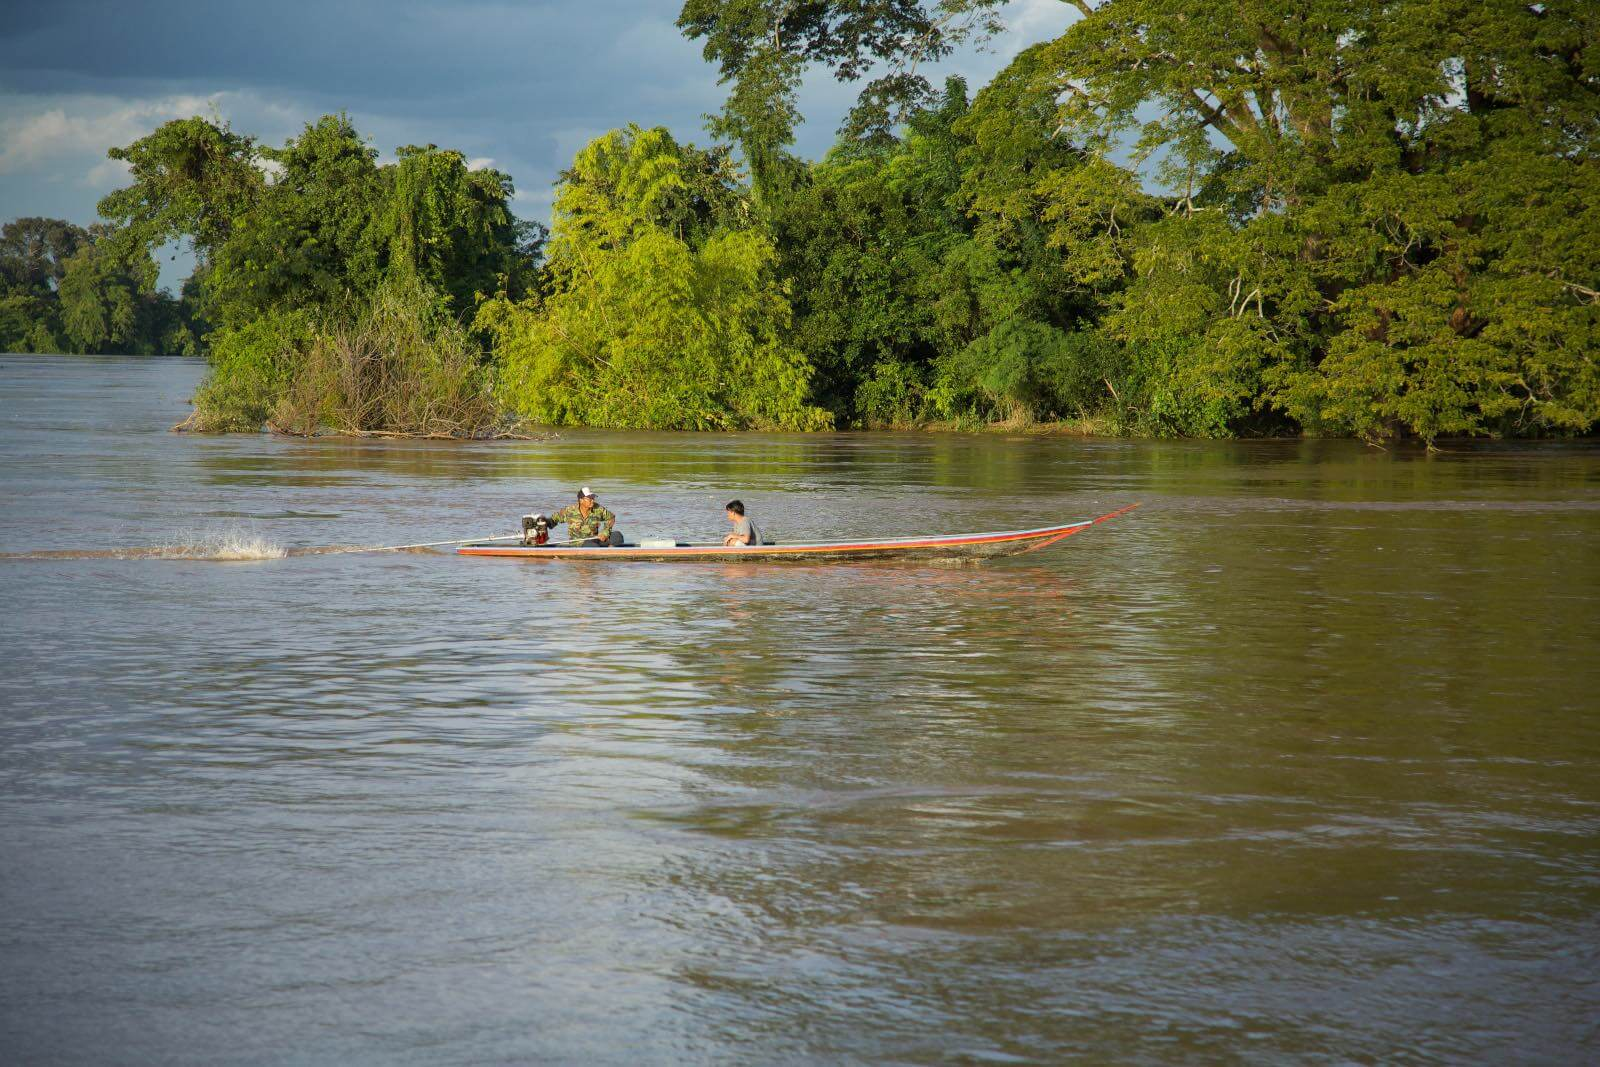 Men driving a small boat on the Mekong River in Don Det, Laos-2